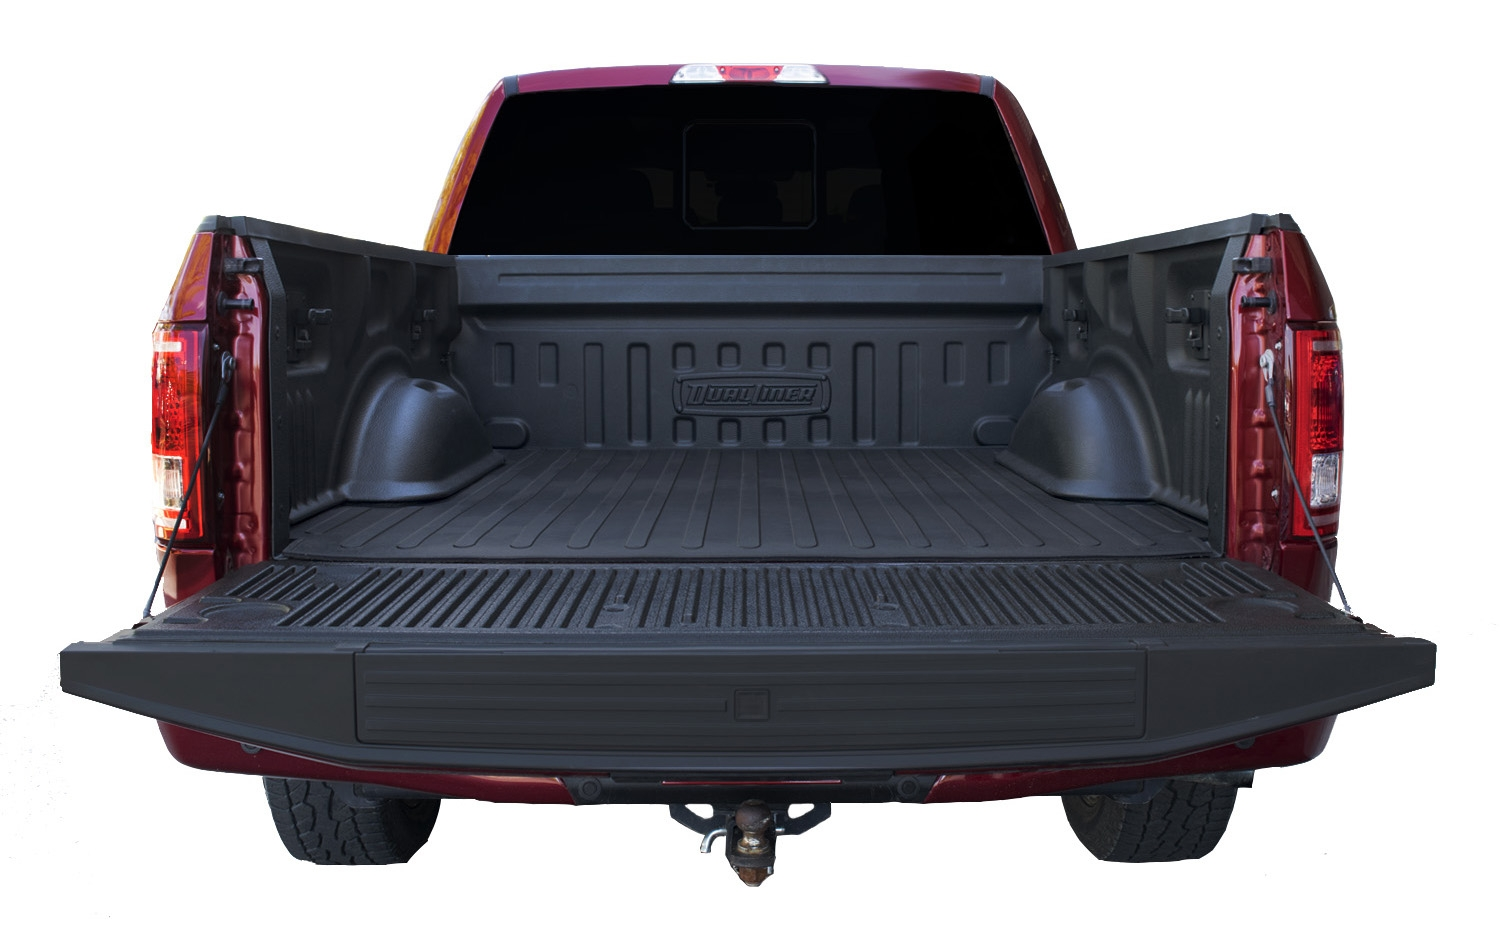 F150 Bed Liner - Bedliner for 2015 to 2020 Ford F 150 ...